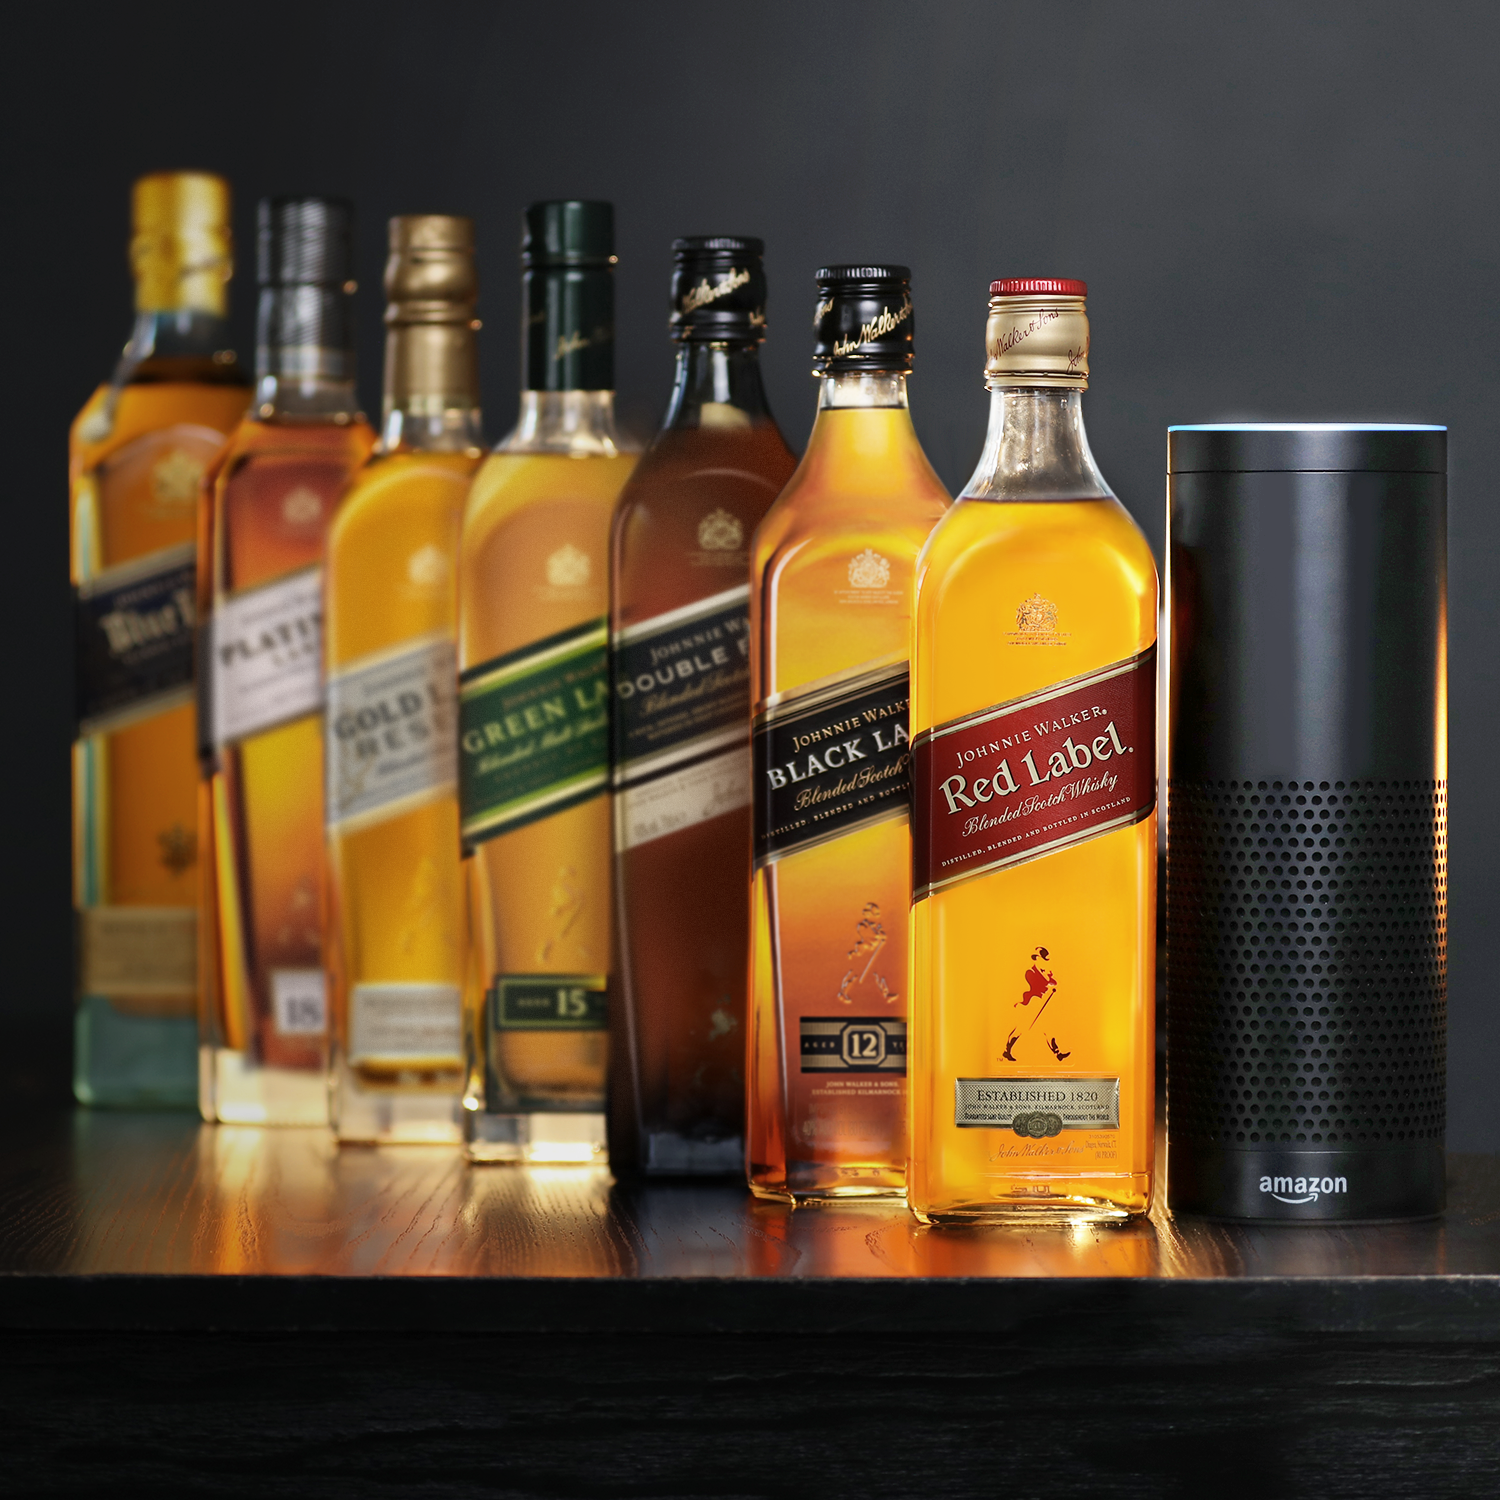 Johnnie Walker announces Digital Mentorship program - World Class Whisky Education Now Available From Home or On The Go